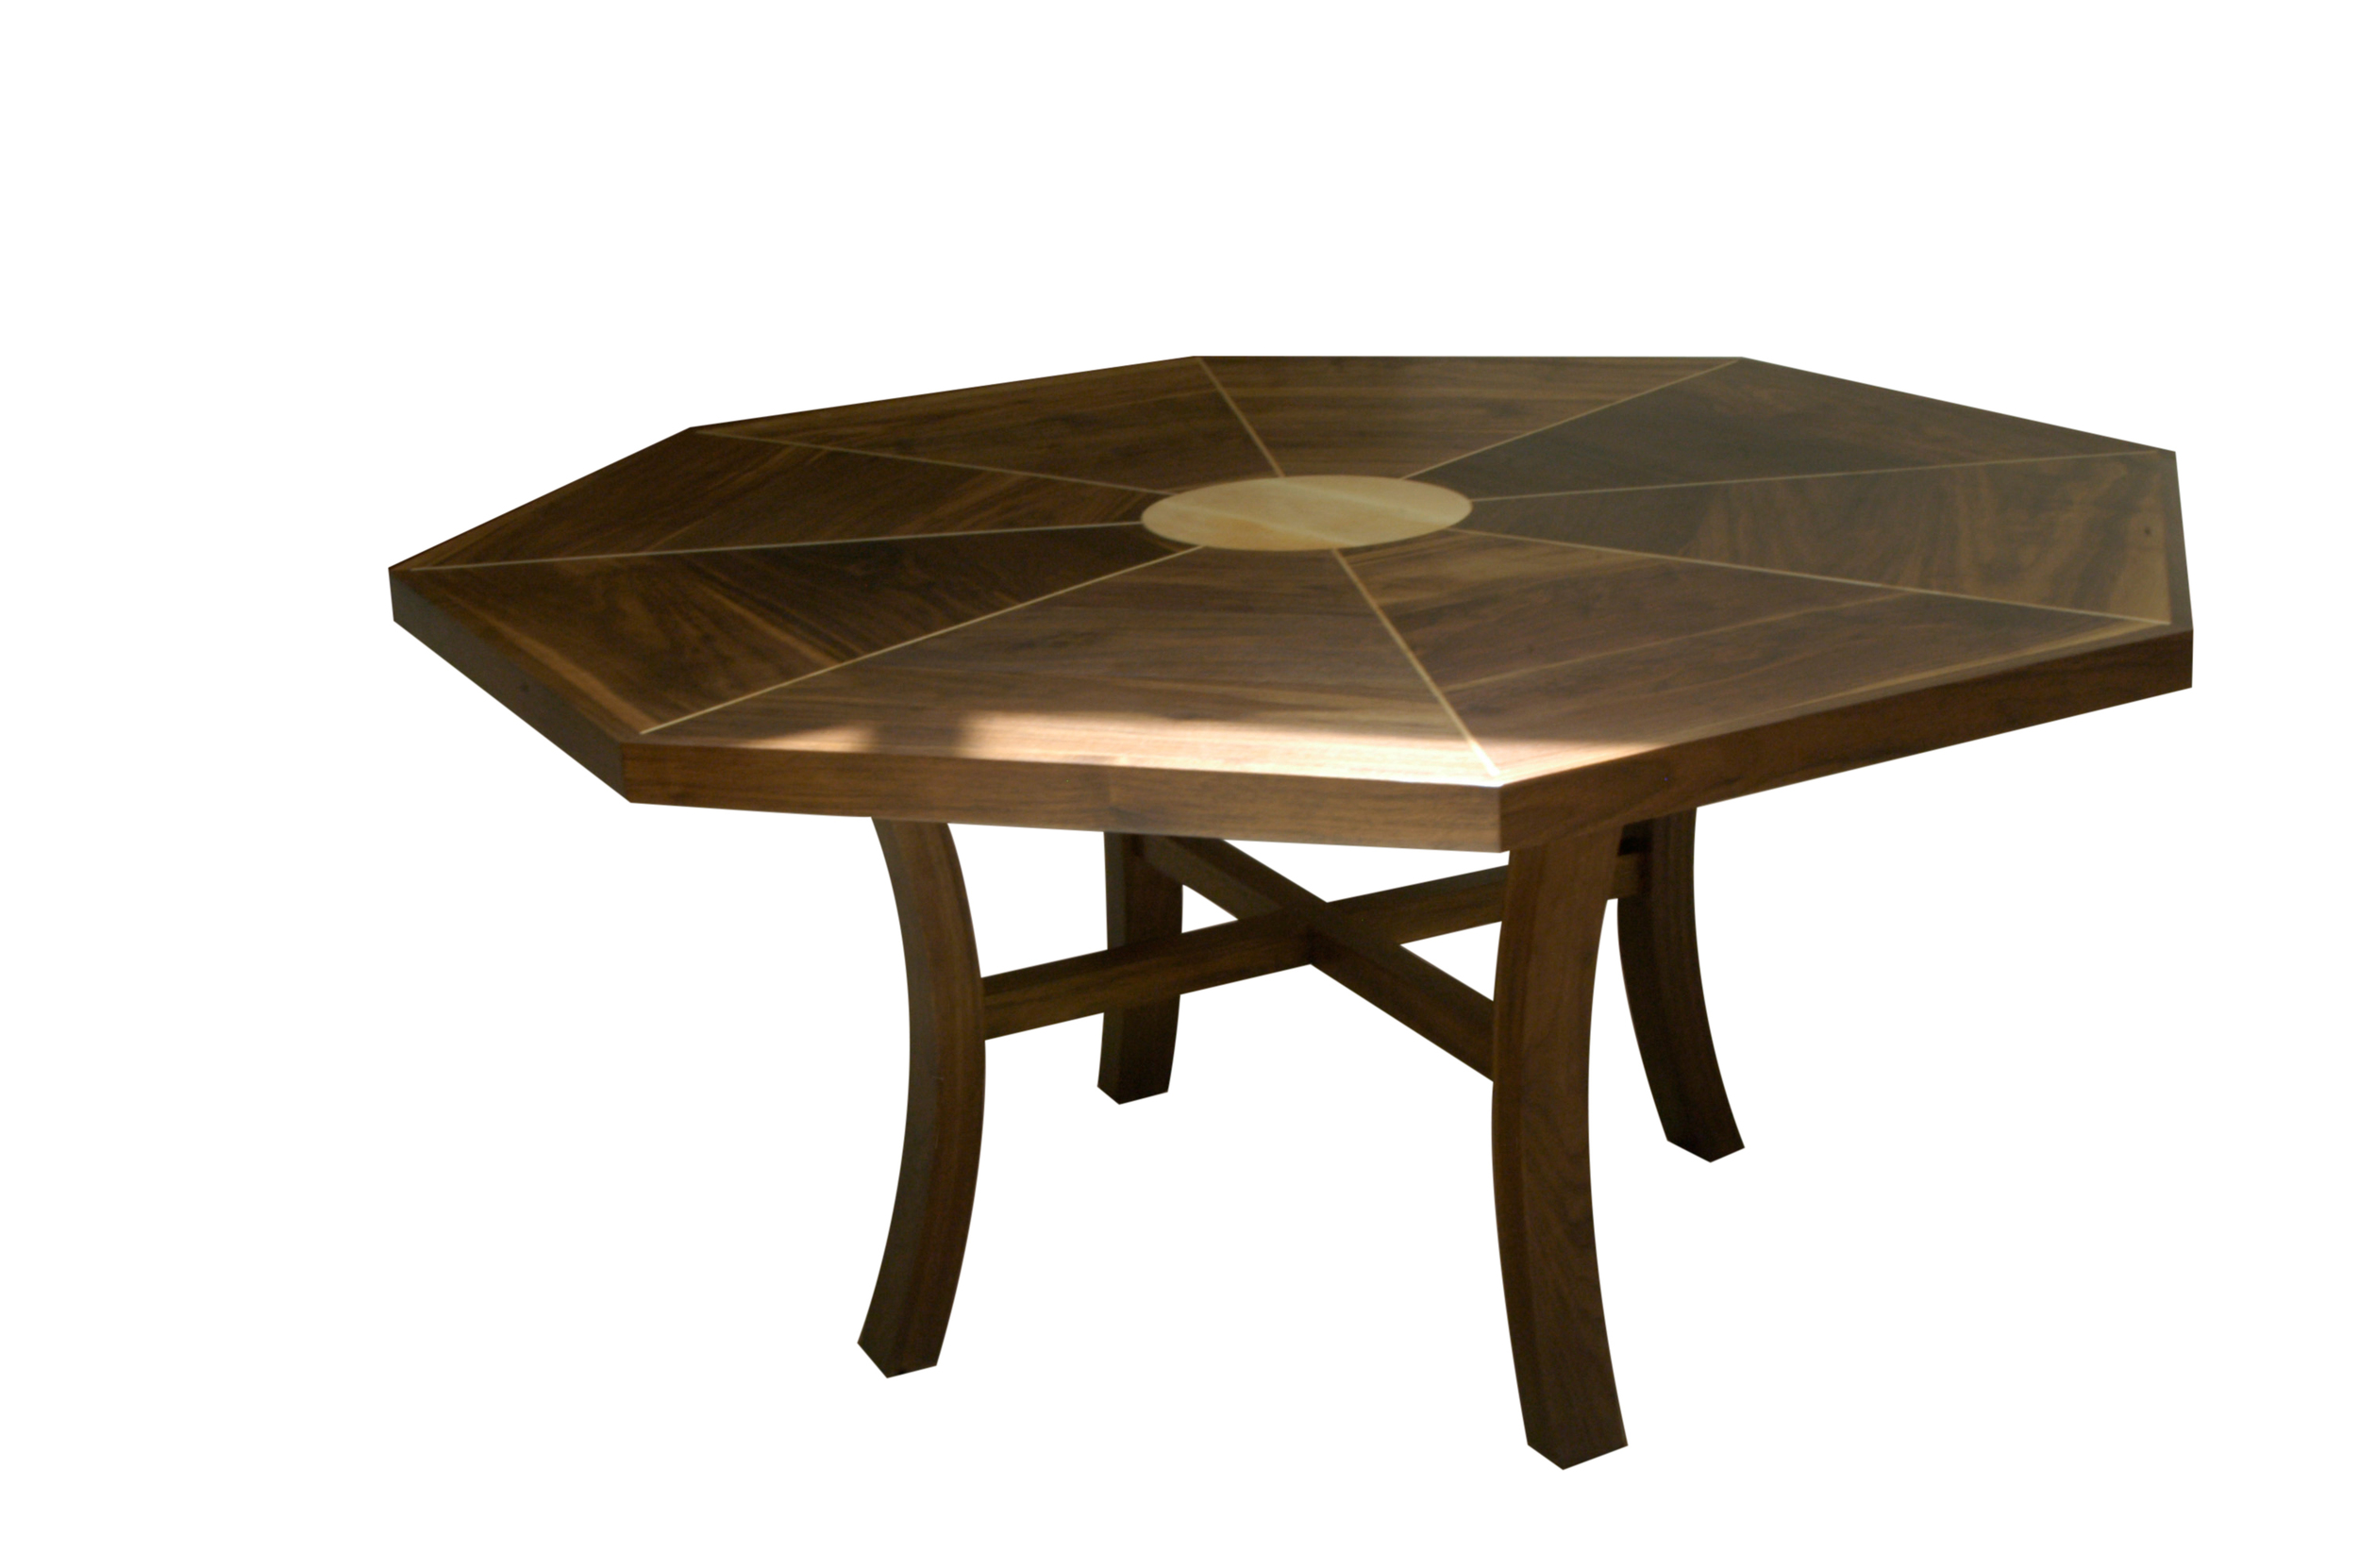 CRABTREE Dining Table